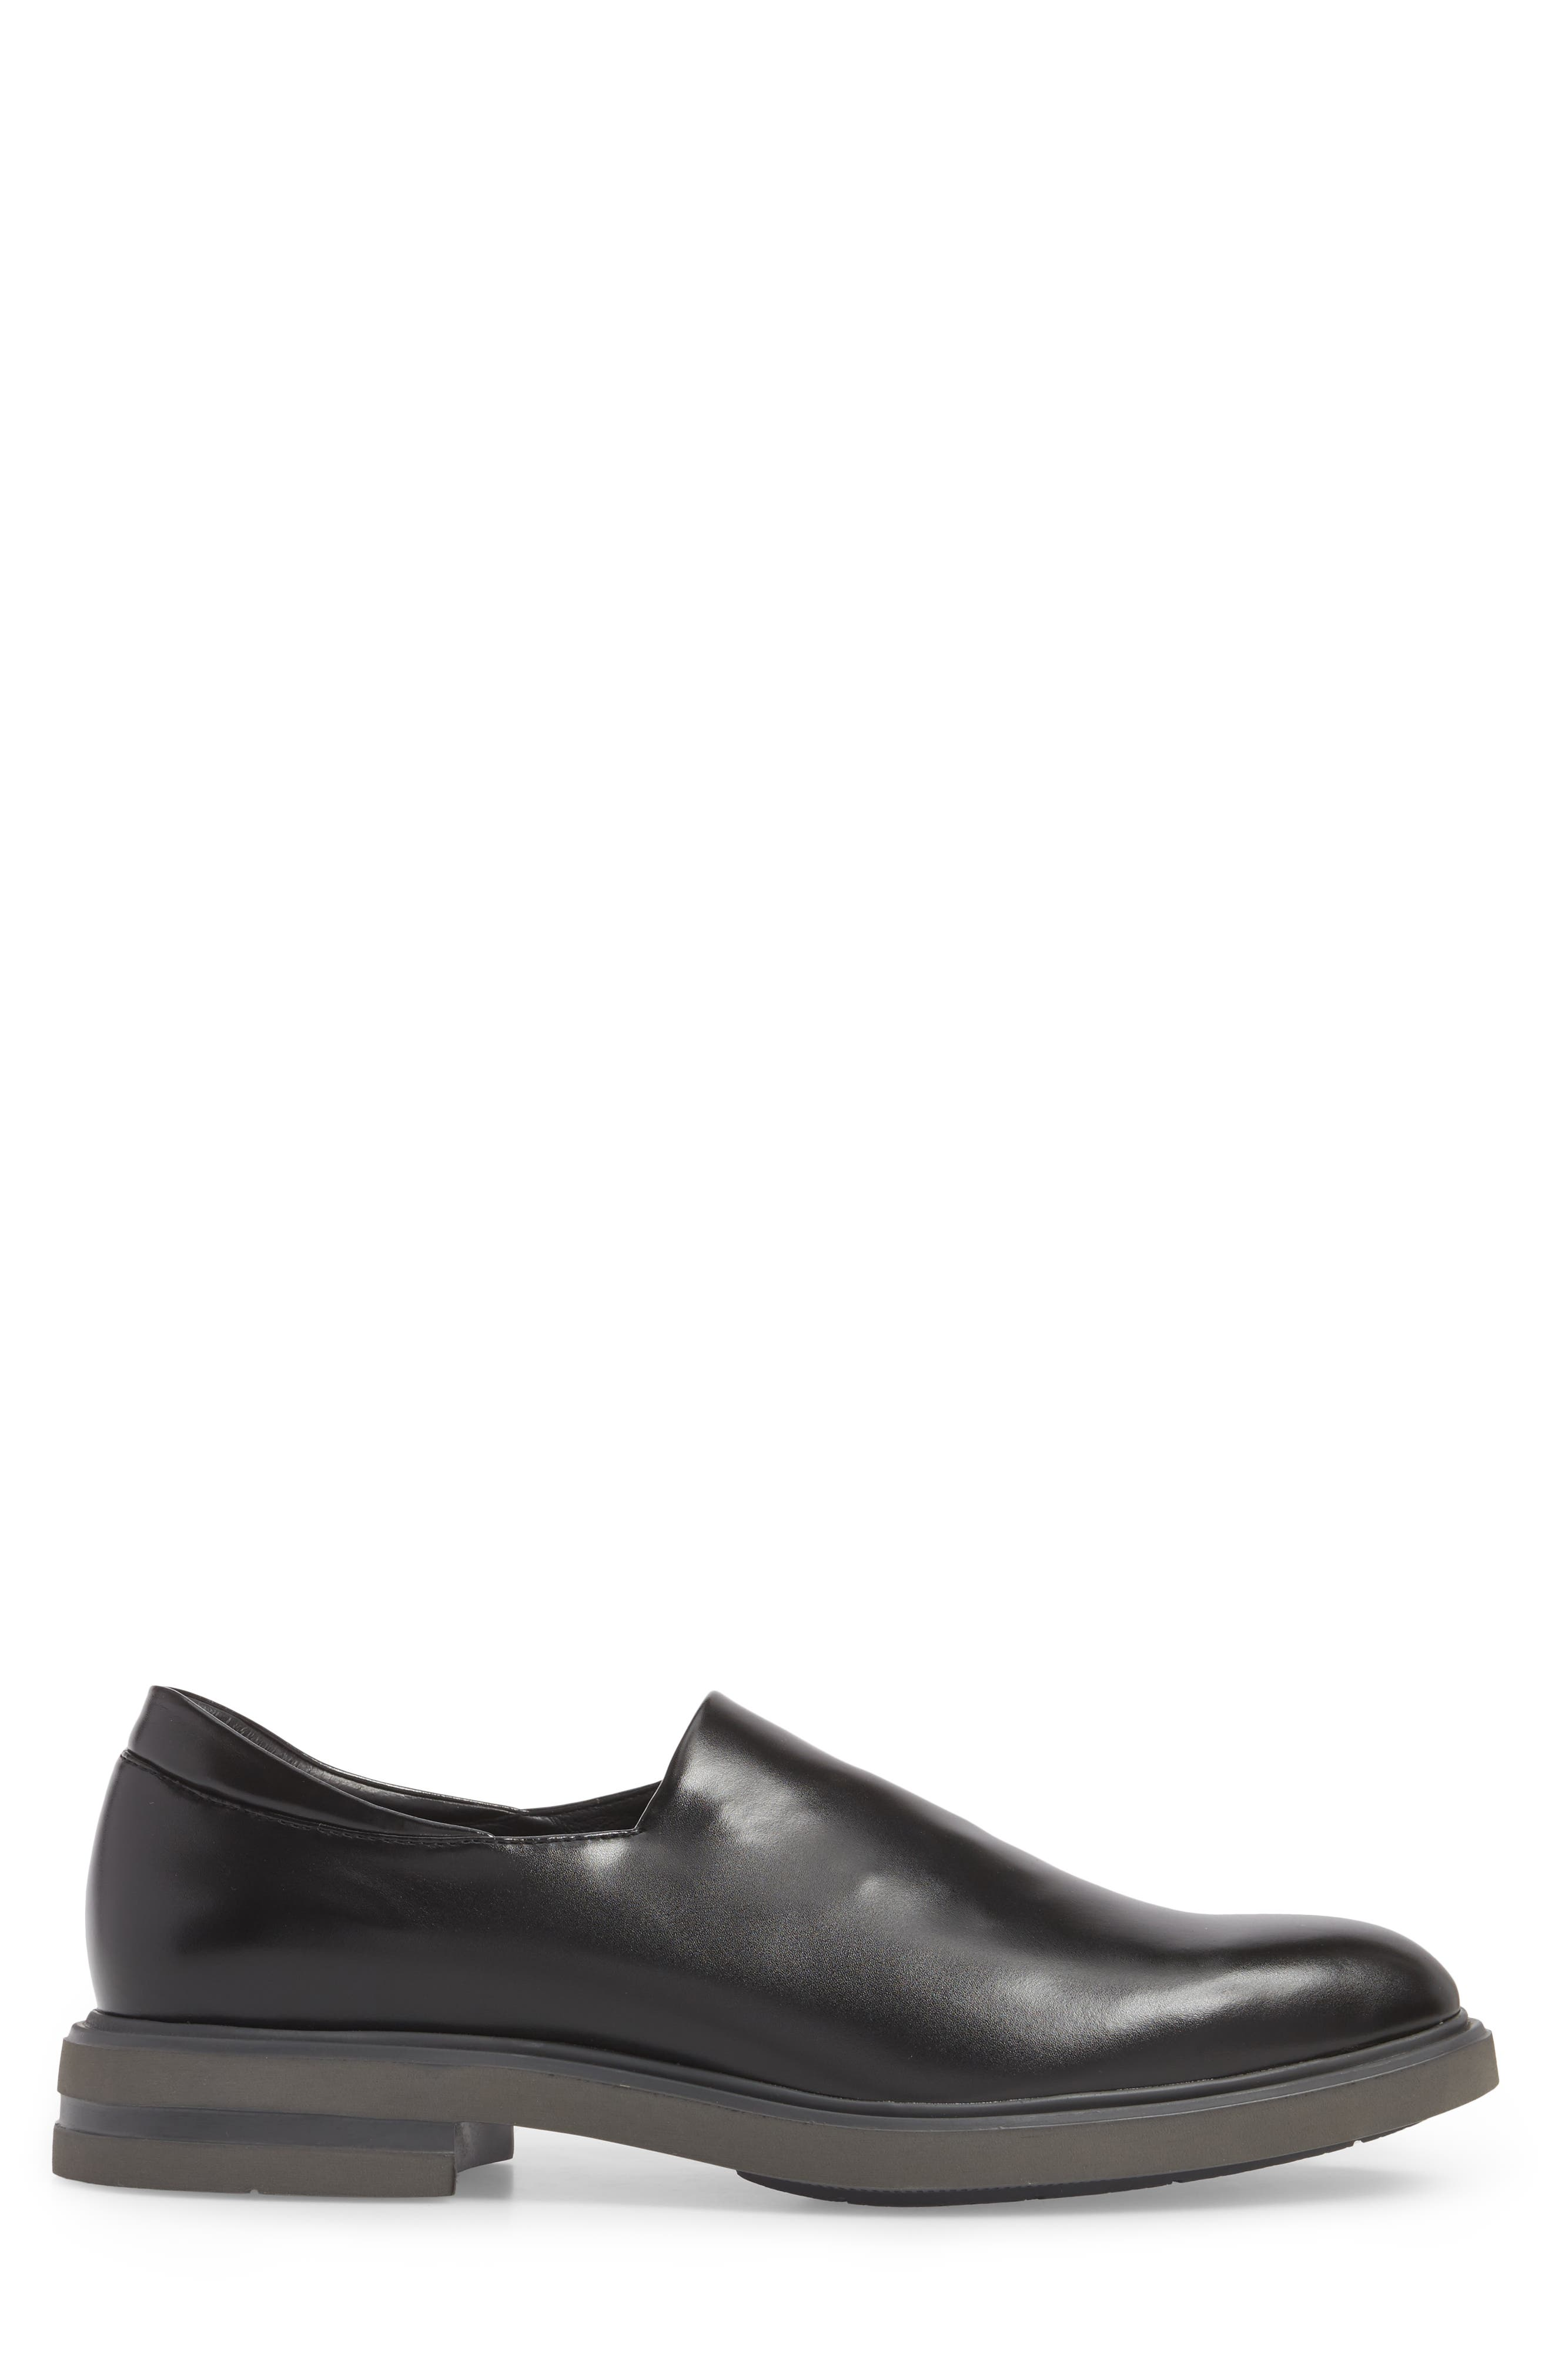 Eliam Venetian Loafer,                             Alternate thumbnail 3, color,                             Black Leather